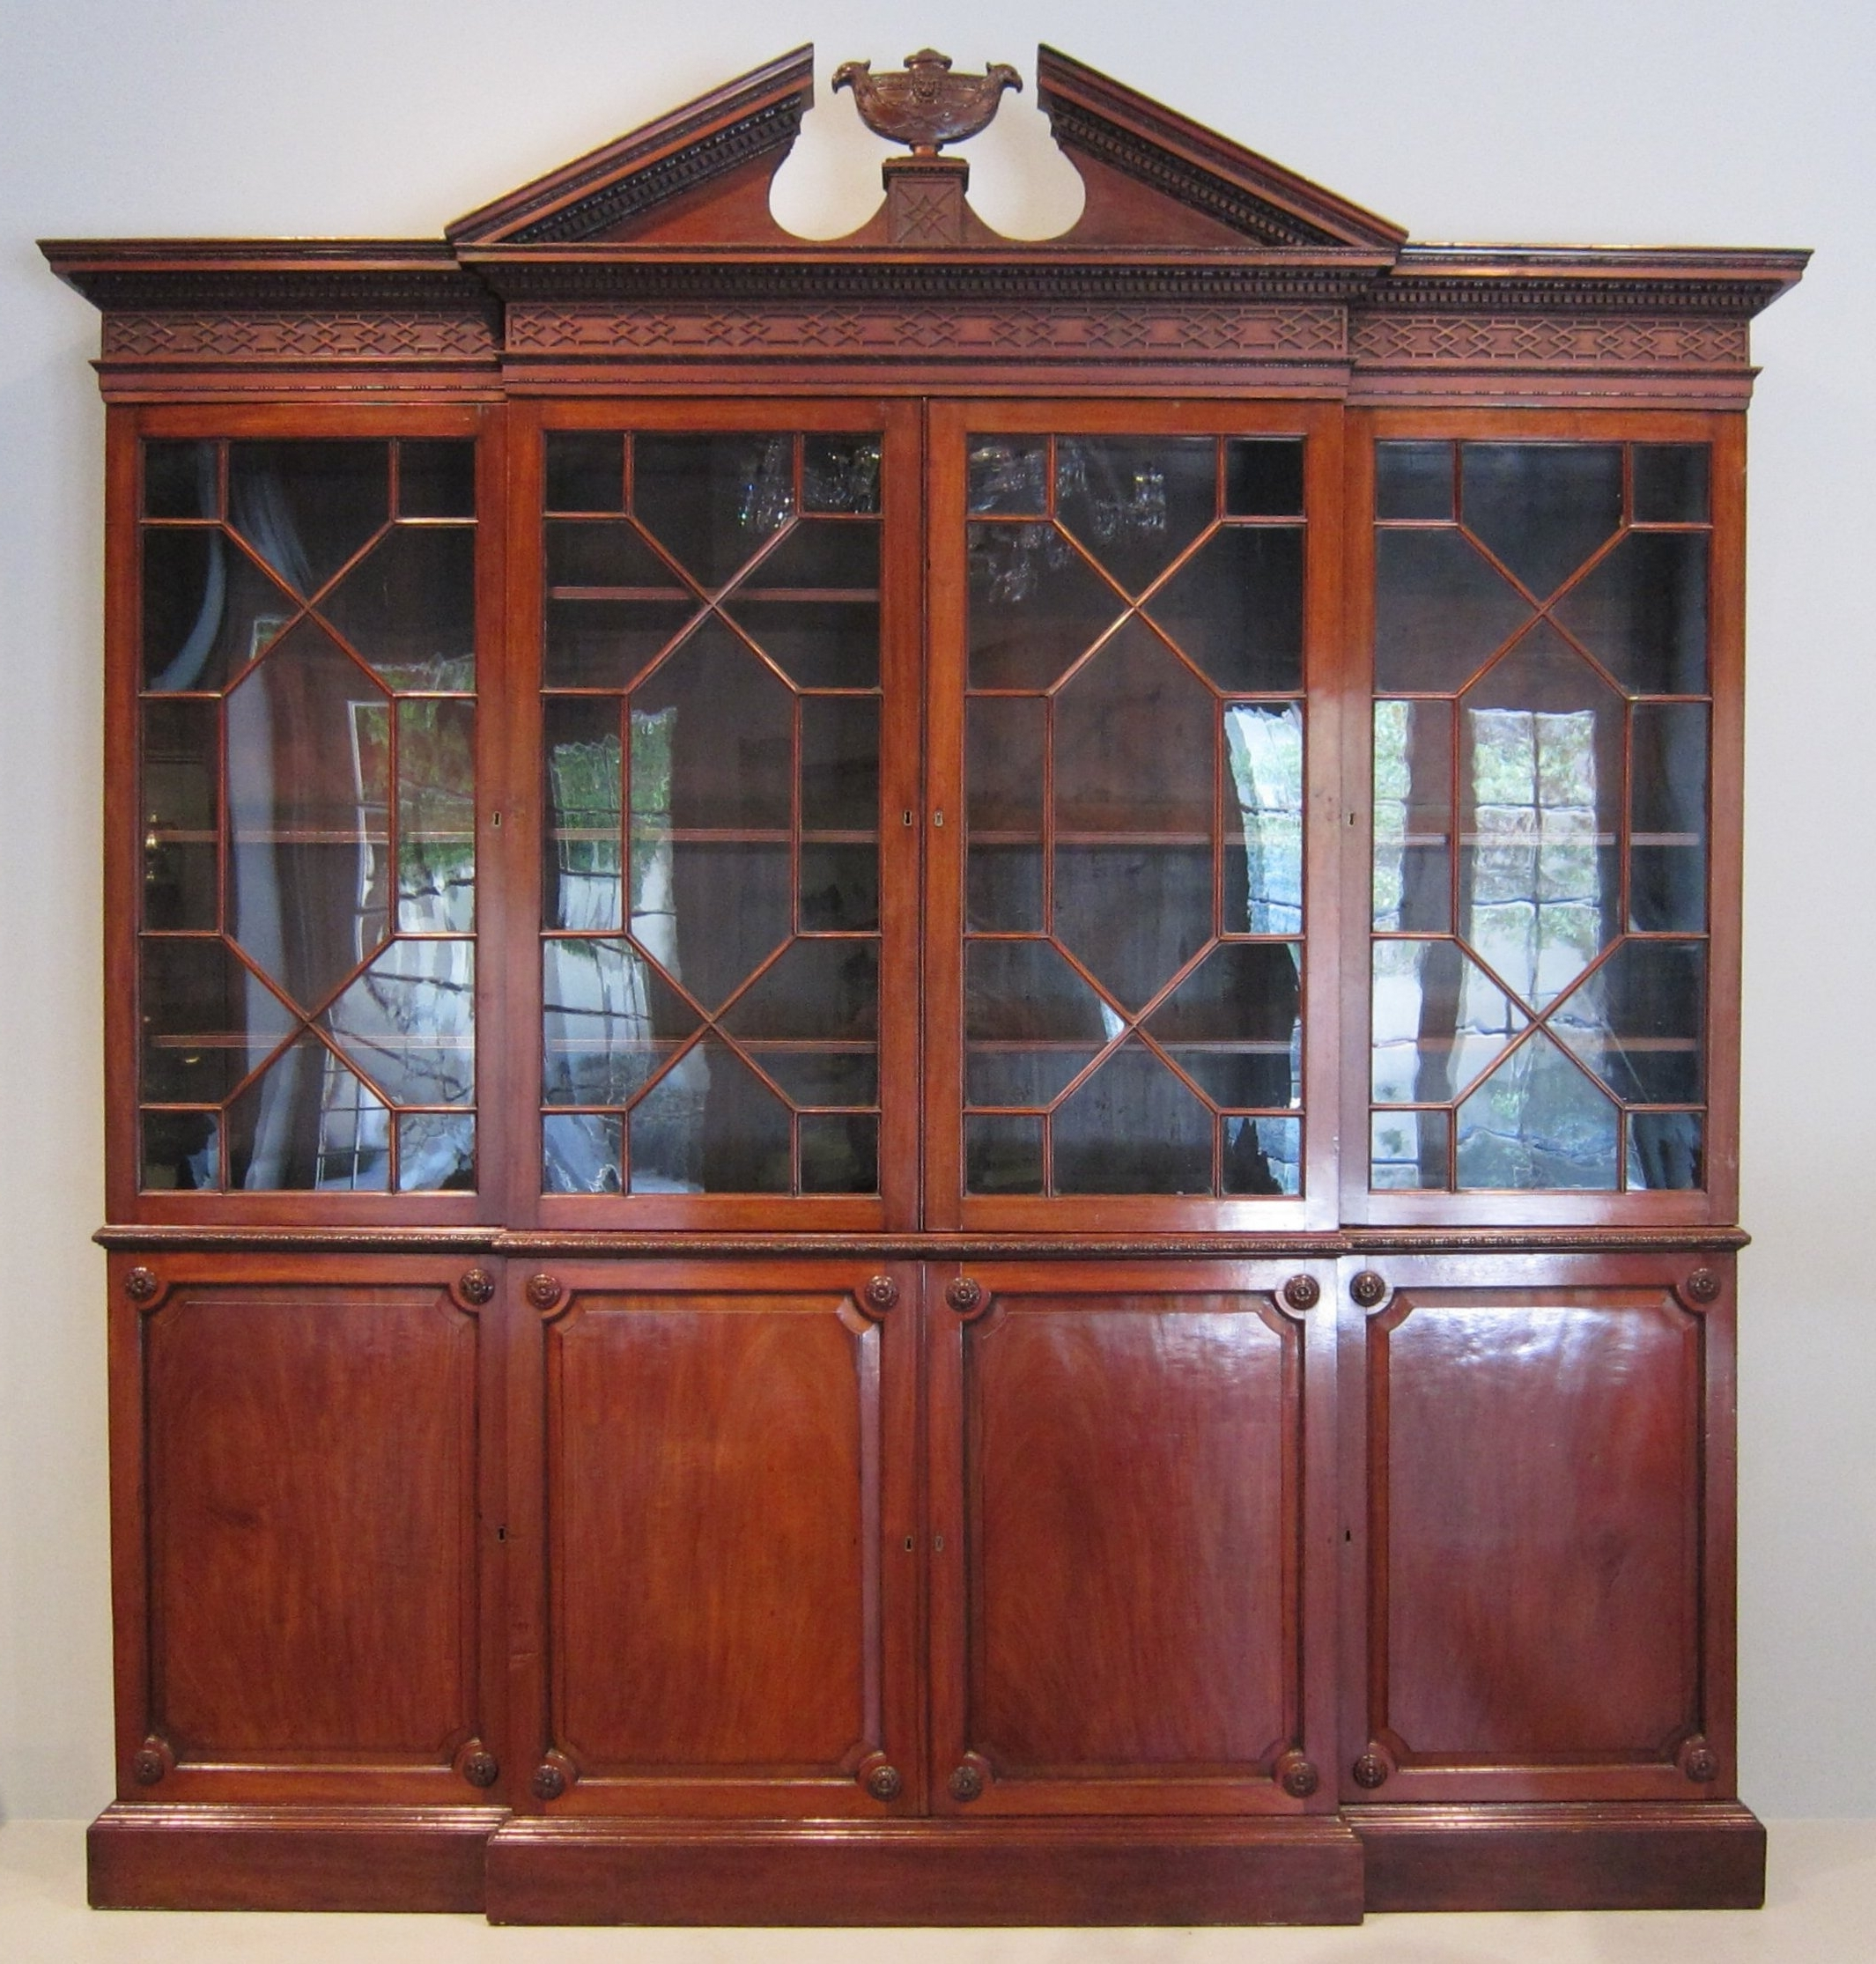 File:wla Haa Breakfront Bookcase After Thomas Chippendale Regarding Well Known Break Front Bookcases (View 6 of 15)